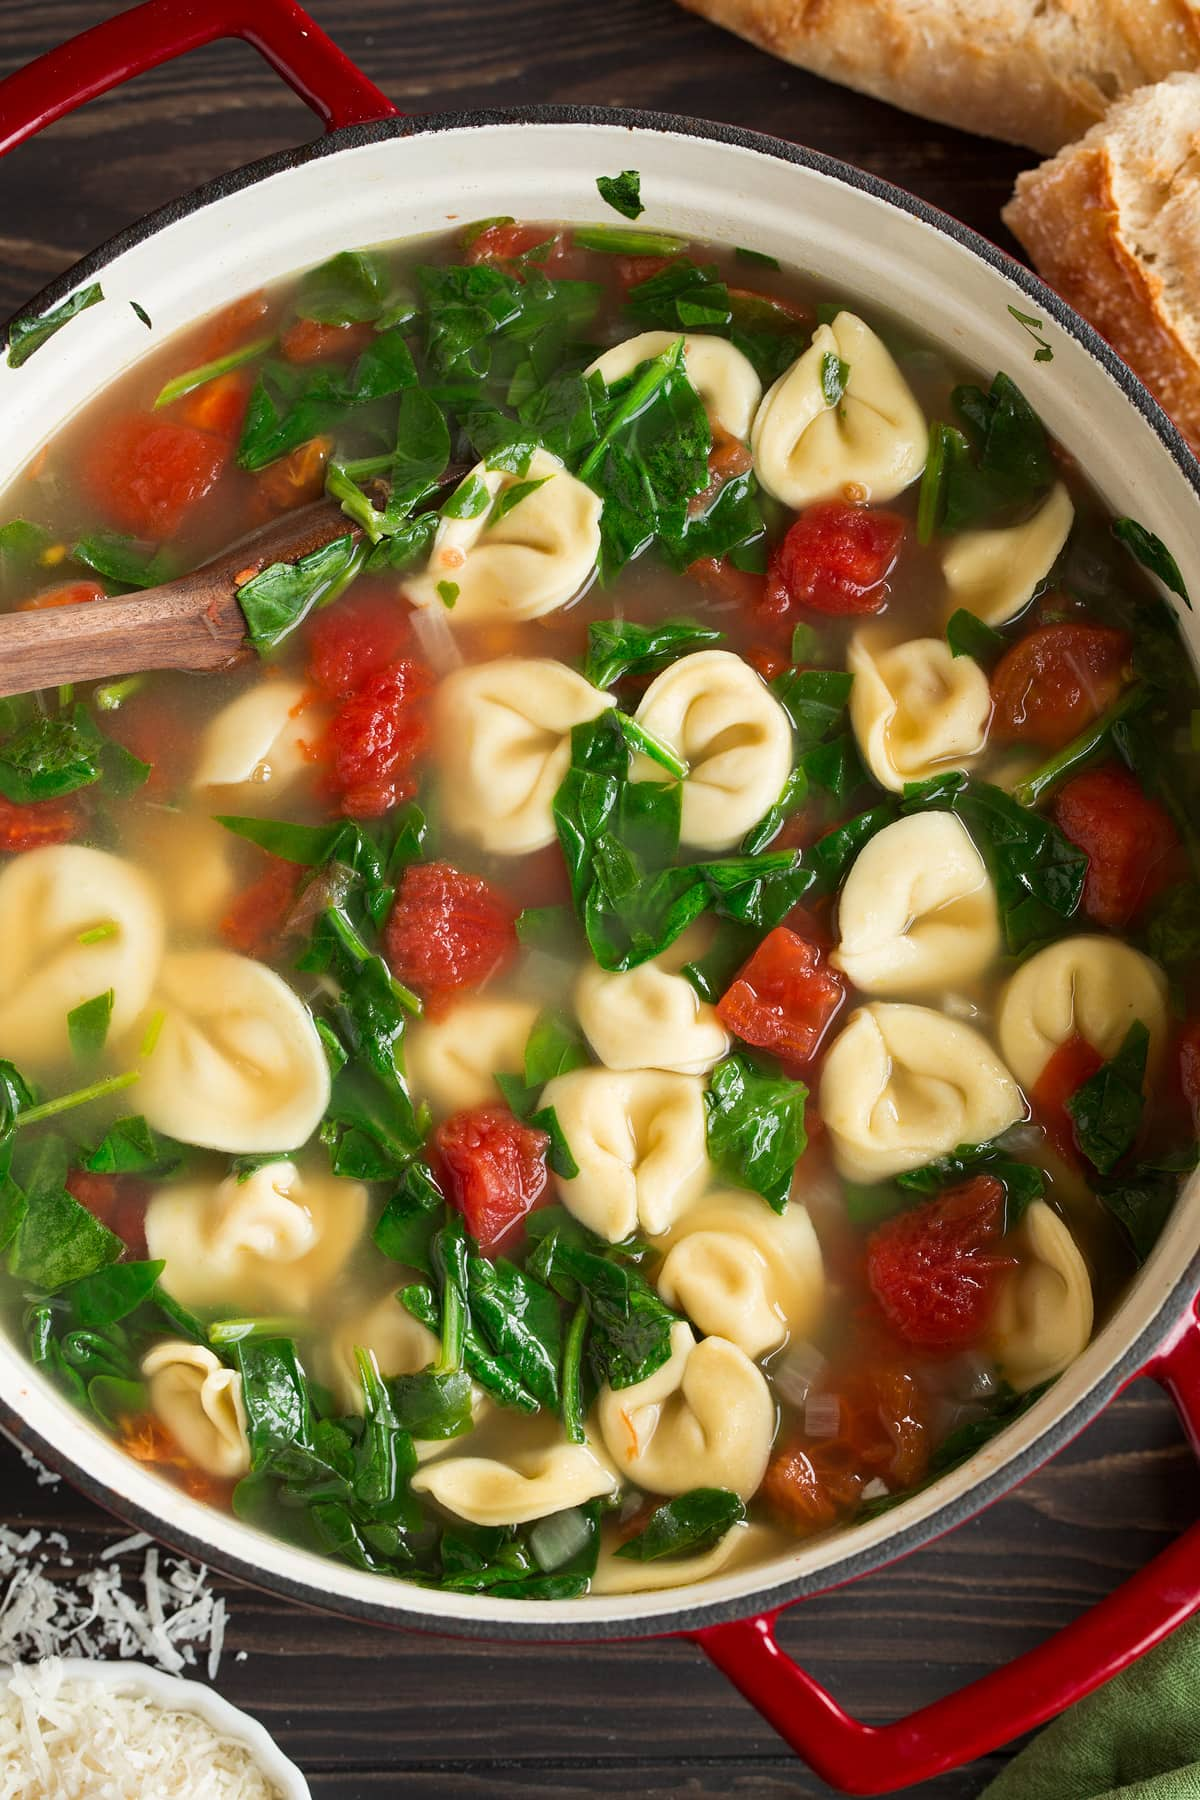 Overhead image of tortellini soup in a large red pot.